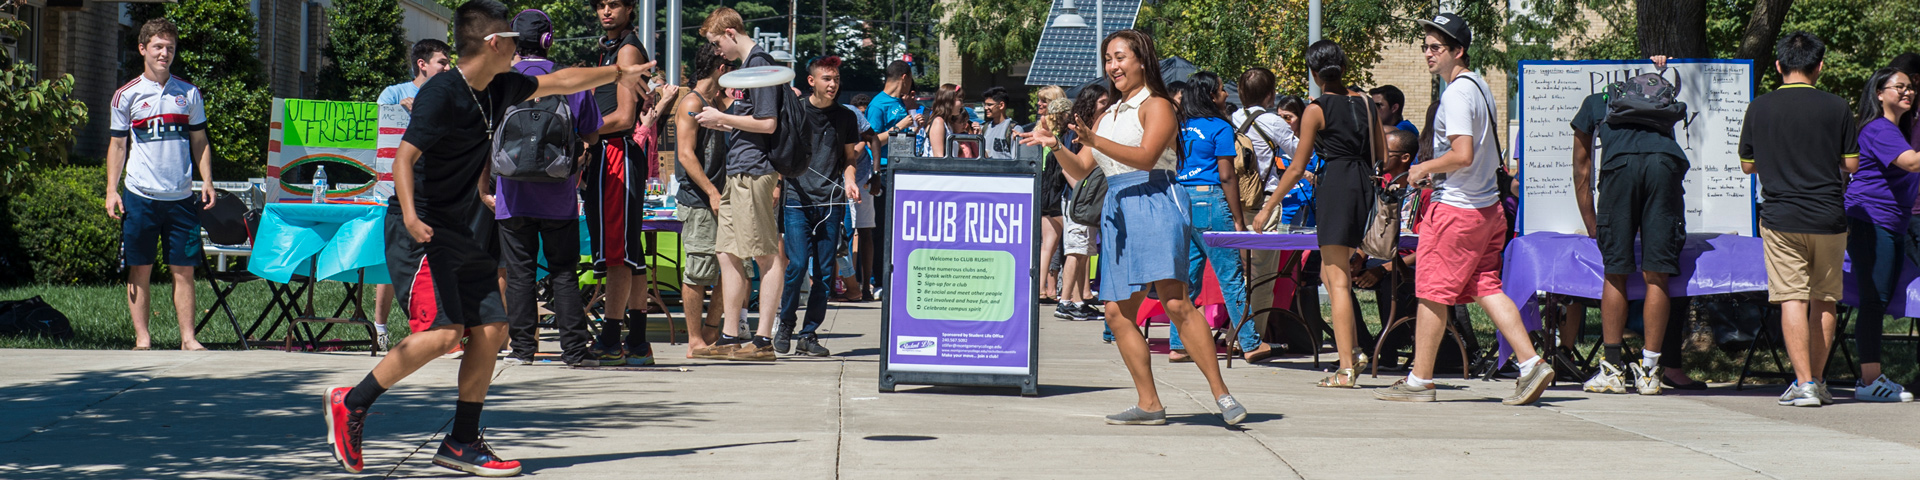 Club Rush on the Rockville campus